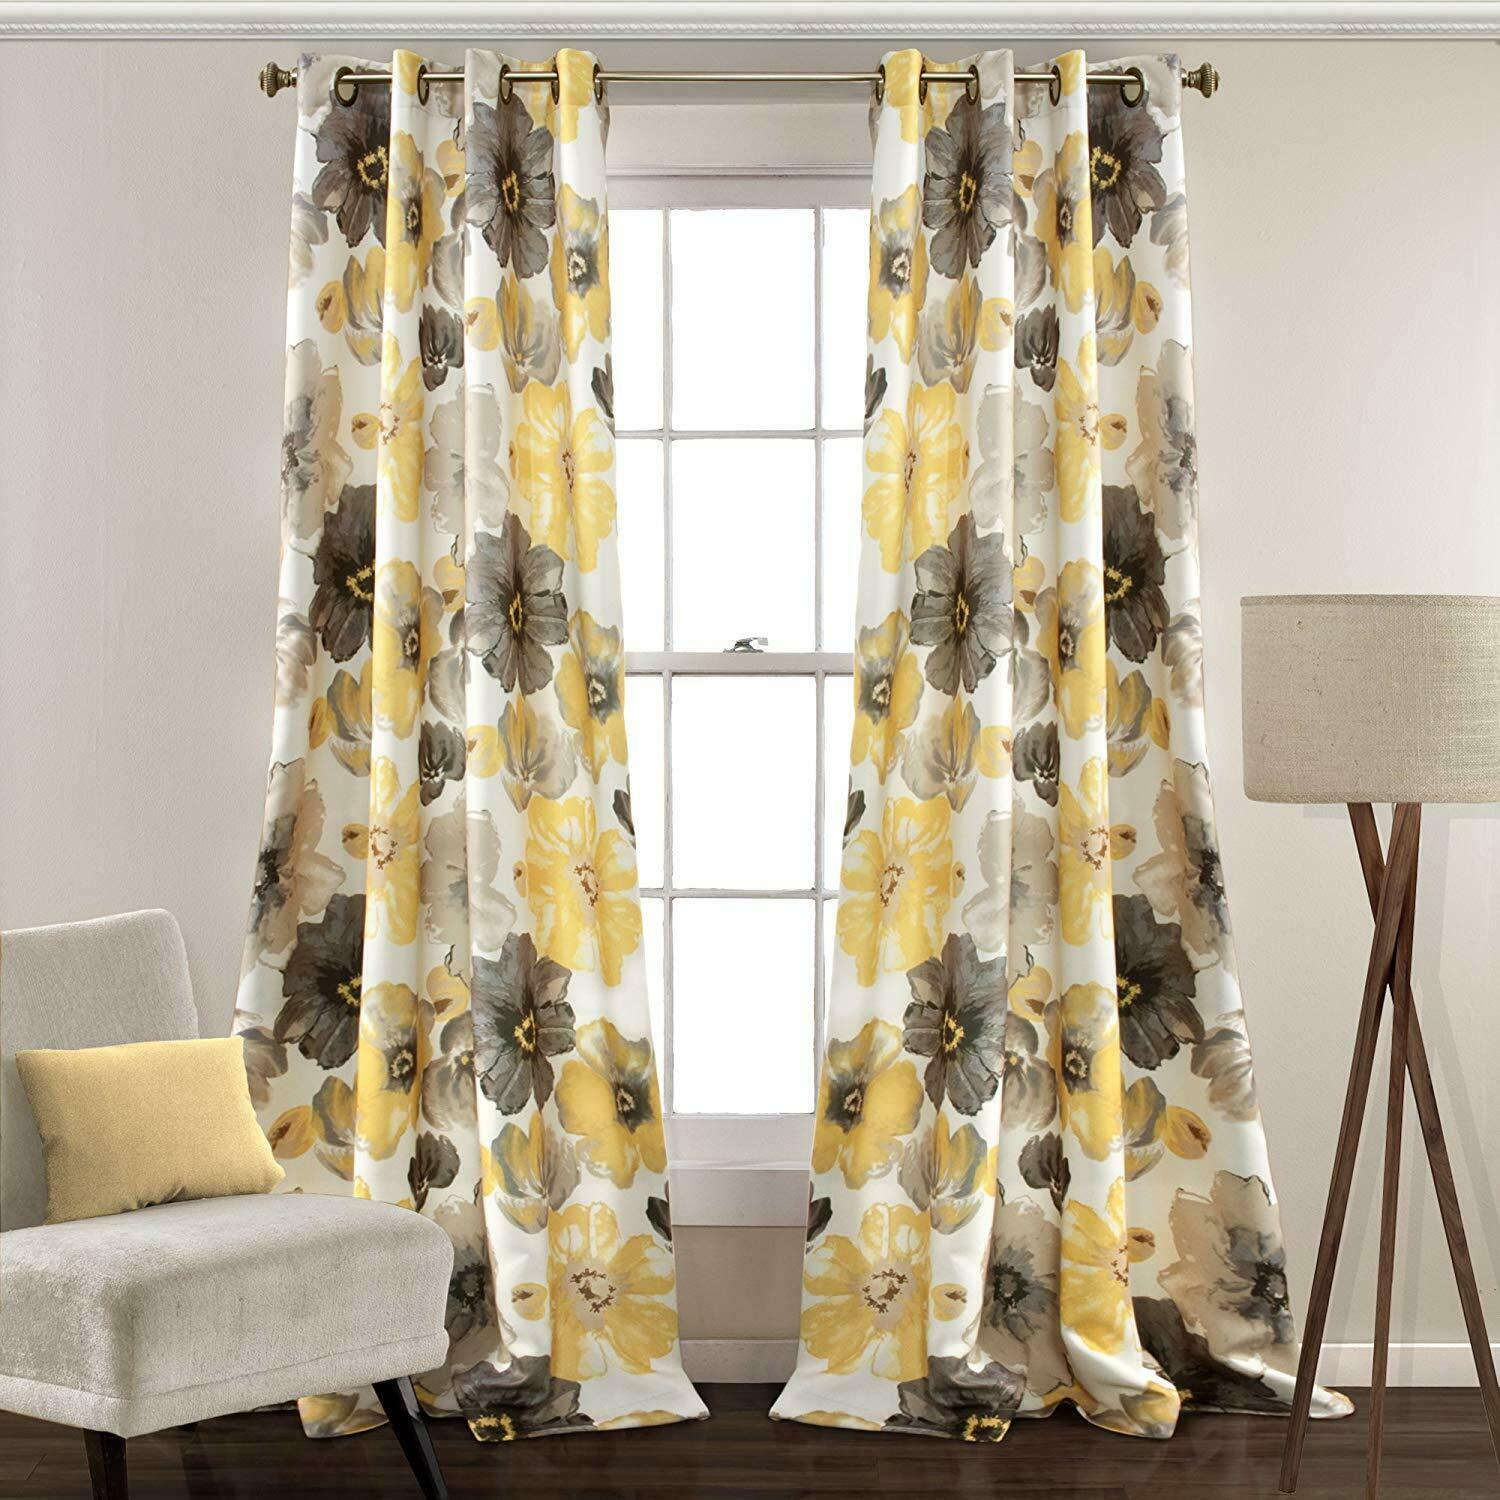 Lush Decor Leah Floral Room Darkening Window Curtains Panel Set Of 2 Intended For Julia Striped Room Darkening Window Curtain Panel Pairs (View 10 of 20)